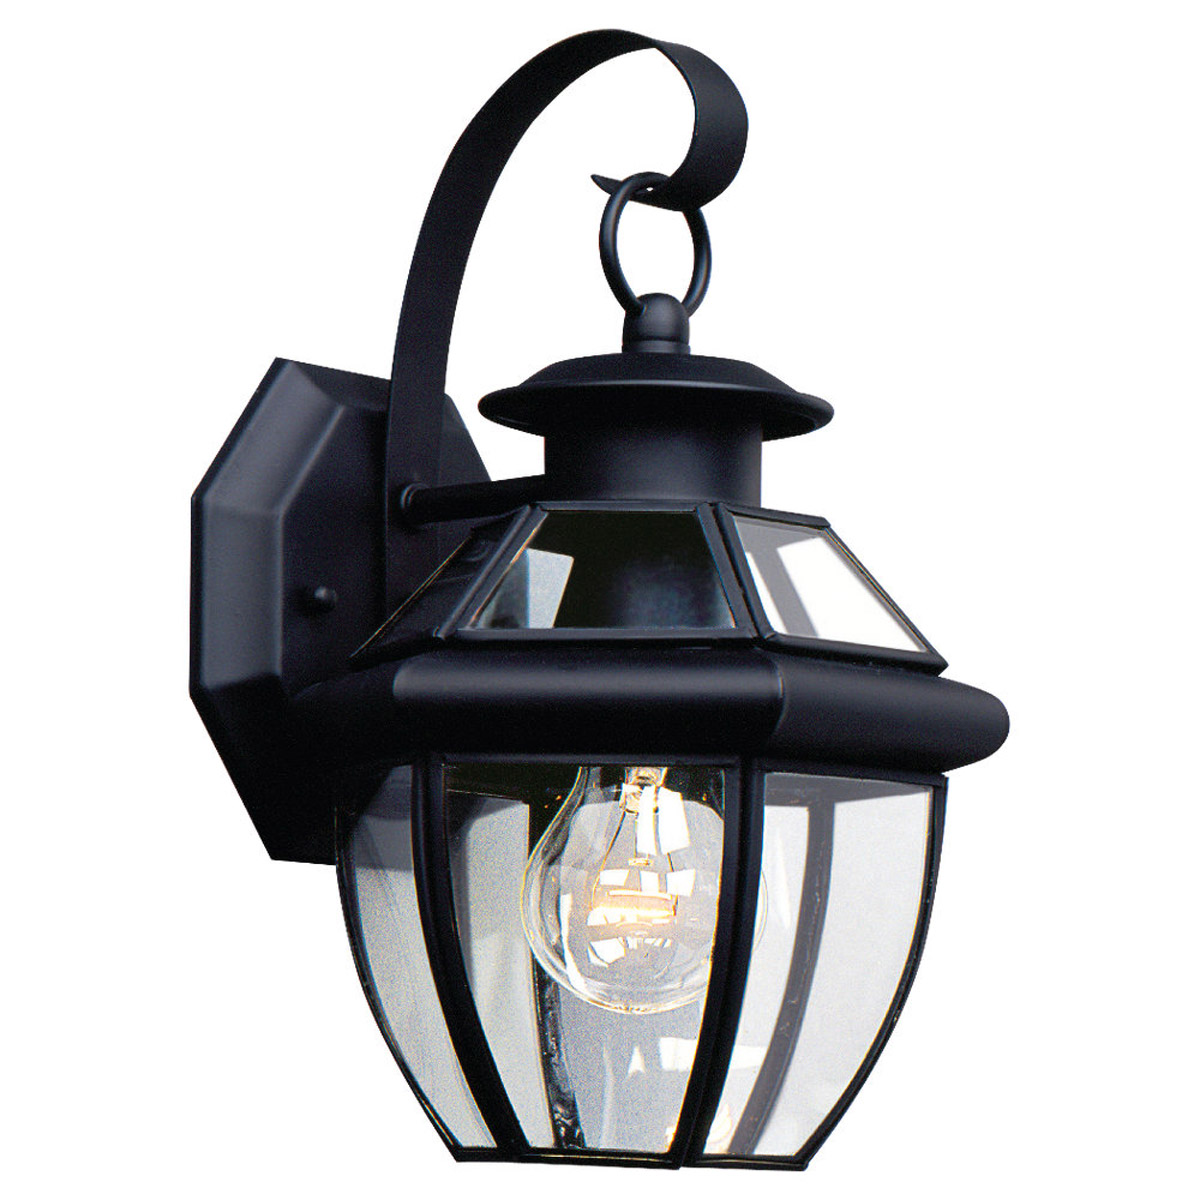 Sea Gull Lighting Lancaster 1 Light Outdoor Wall Lantern in Black 8037-12